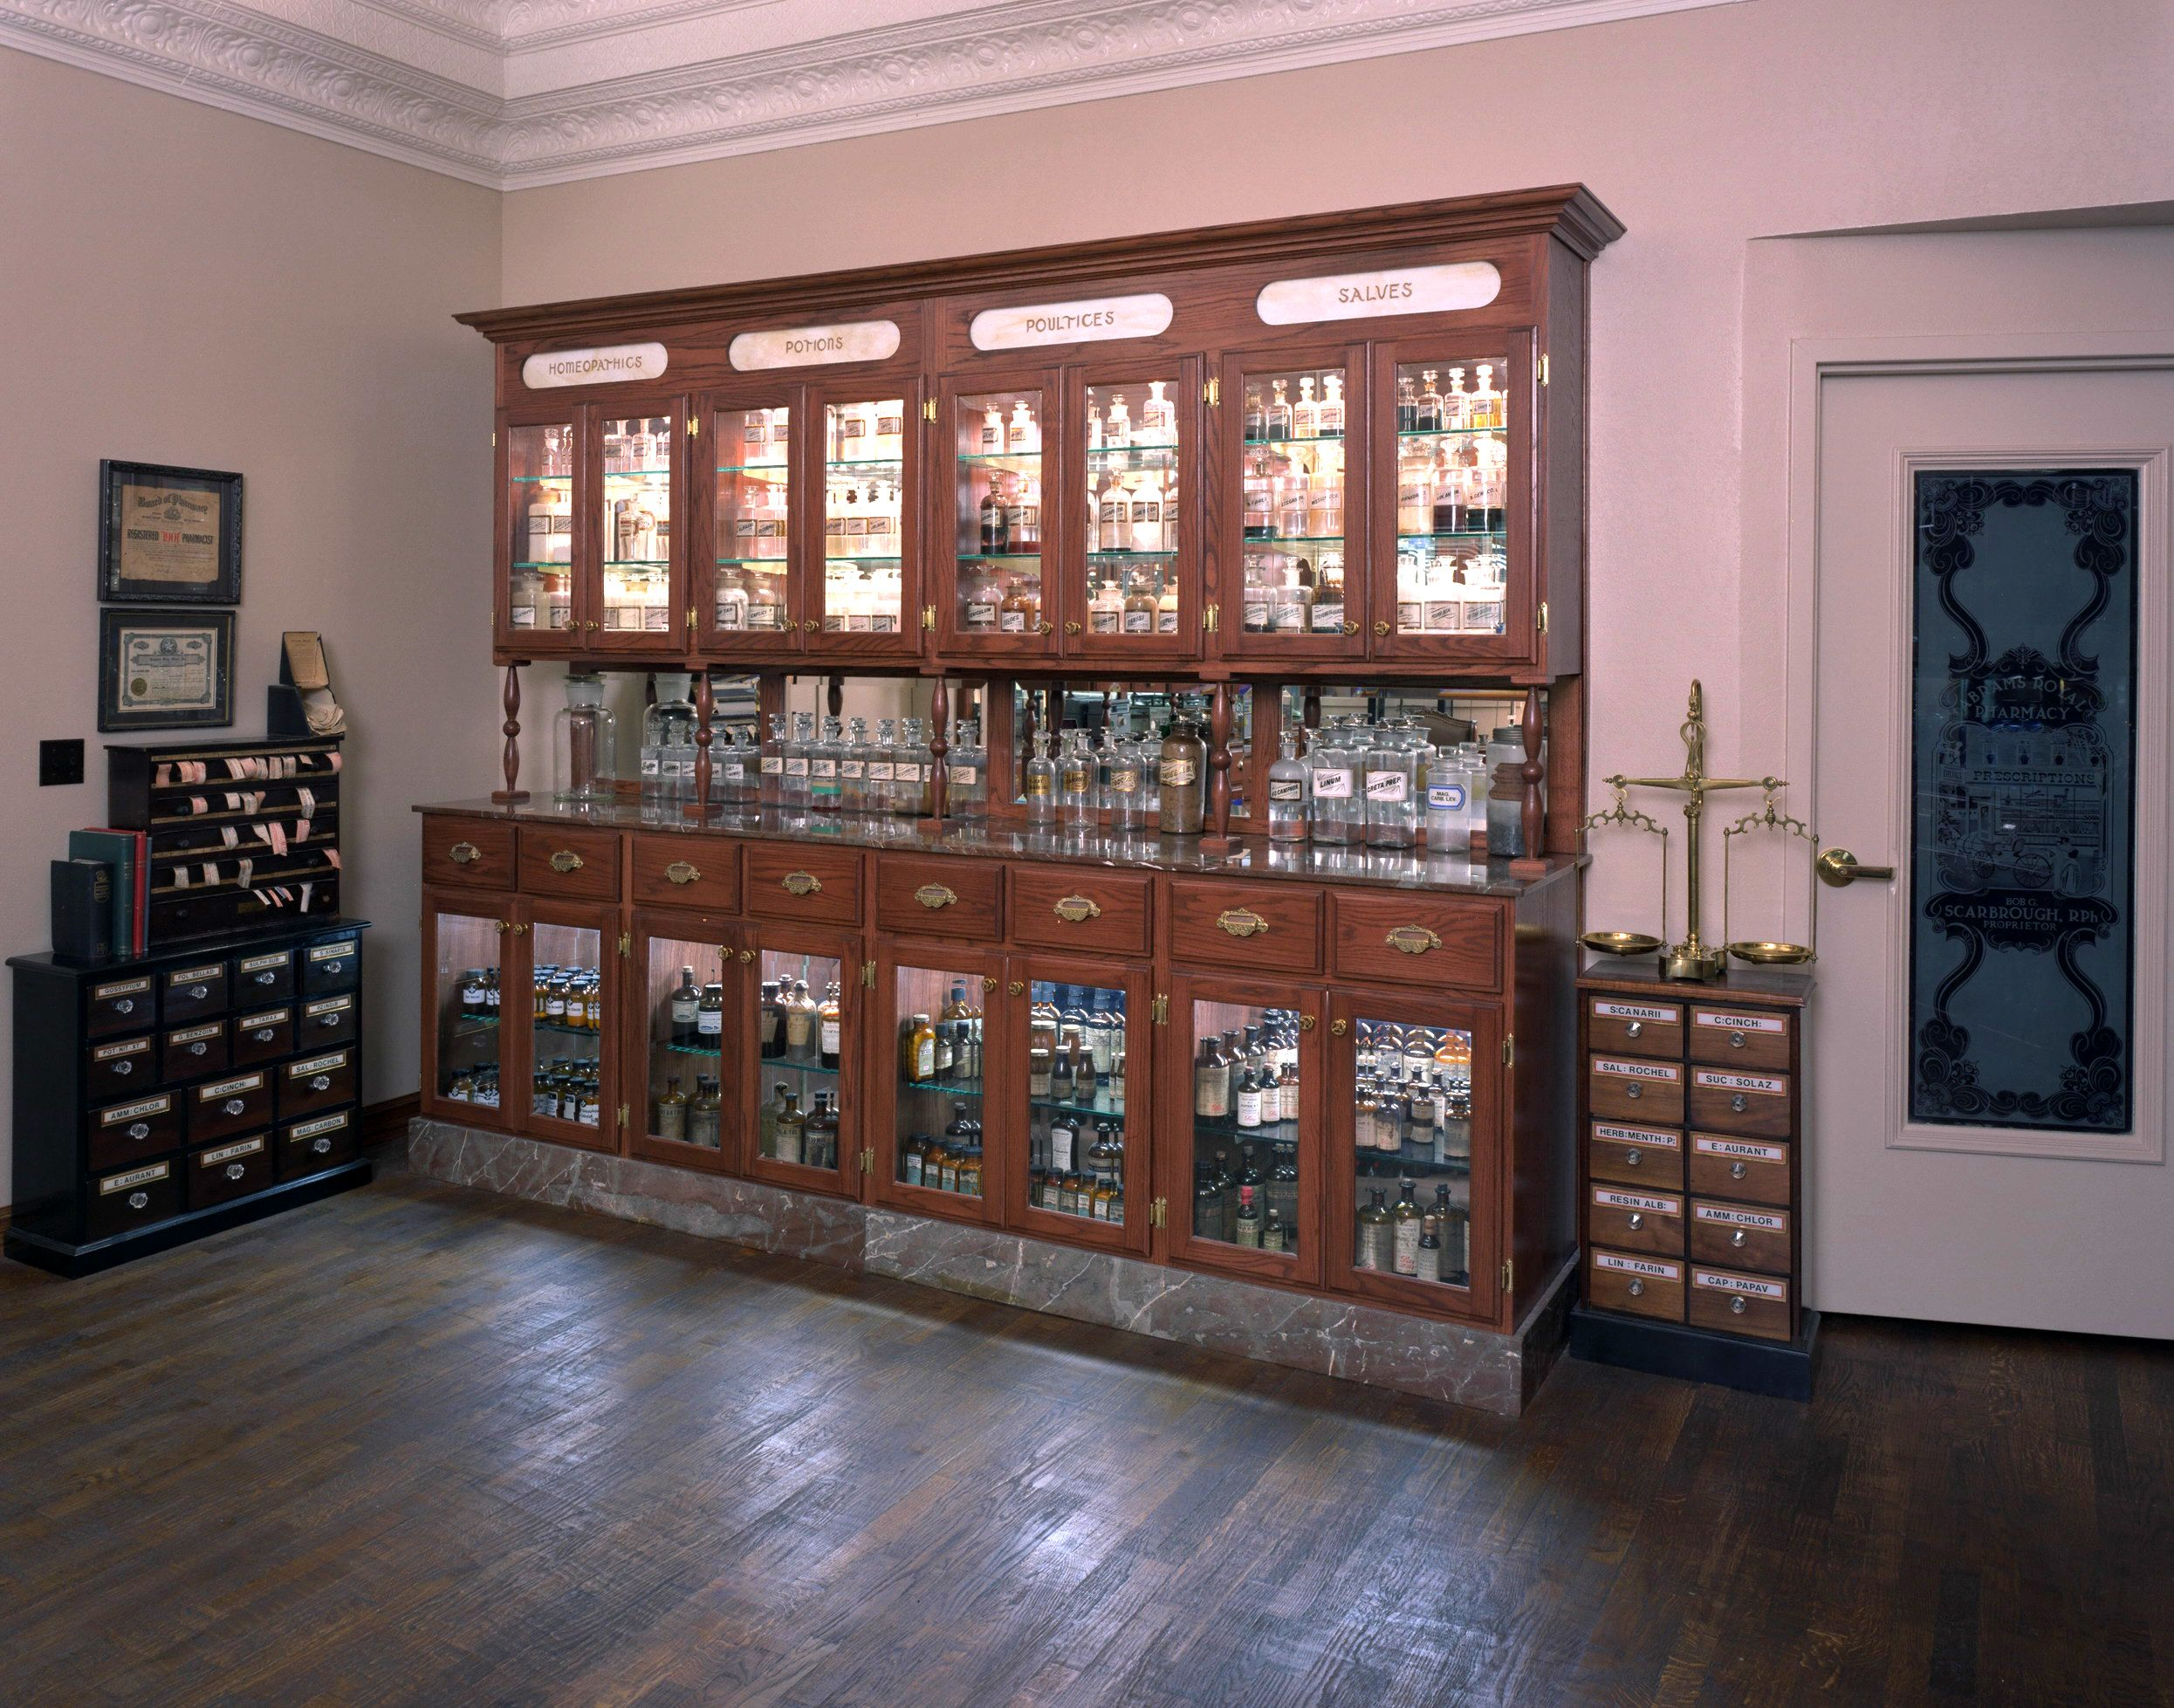 Antique apothecarypharmacy museum with images